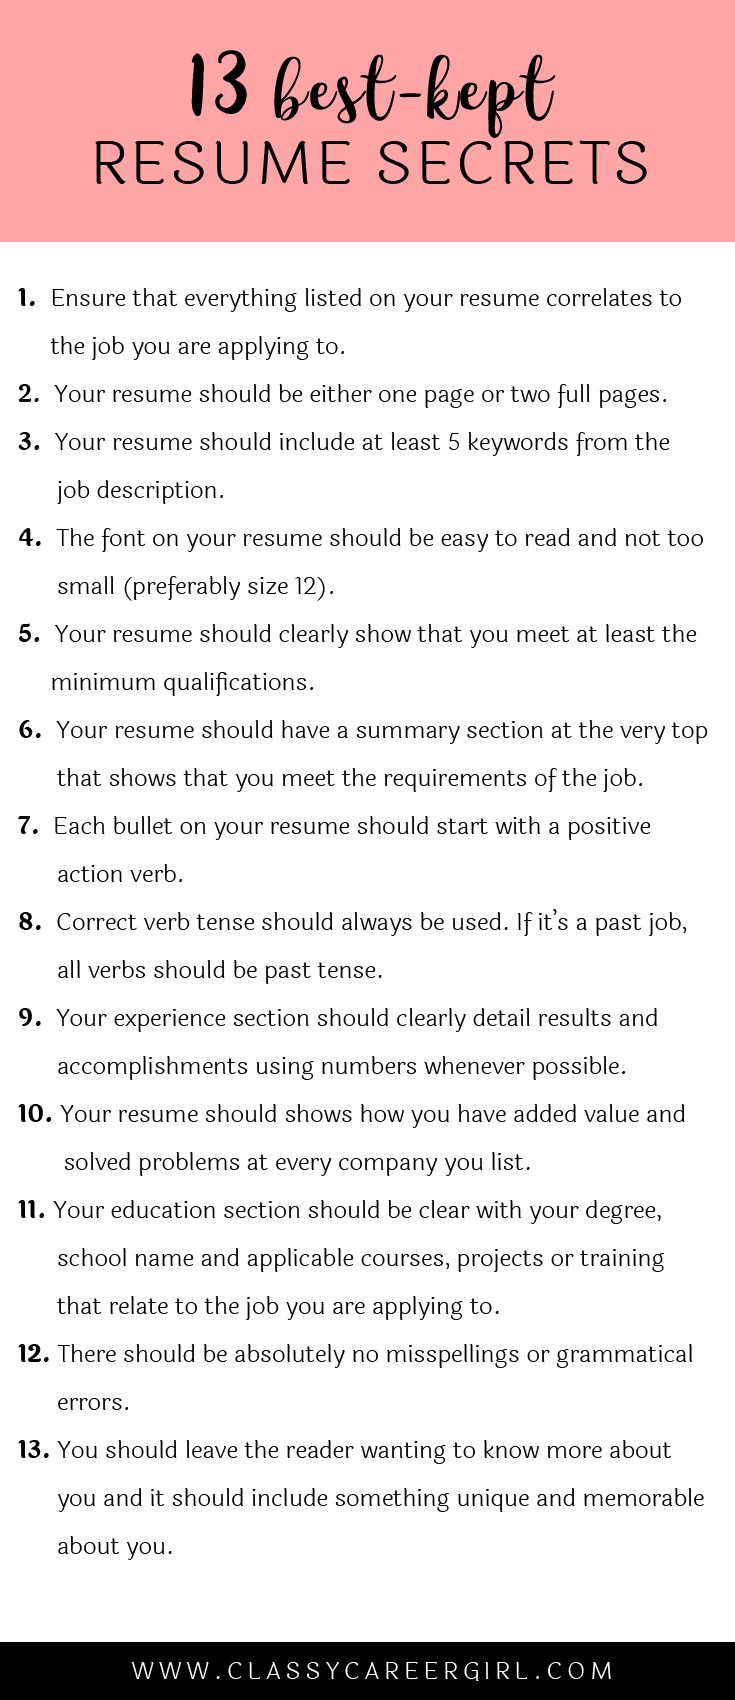 Opposenewapstandardsus  Winsome  Ideas About Resume On Pinterest  Cv Format Resume Cv And  With Excellent Some Hiring Managers Will Toss Your Resume Out If You Dont Know These  With Lovely Top Skills For Resume Also Technical Support Resume In Addition Headline For Resume And Best Resume Writers As Well As Waitress Resume Skills Additionally Microsoft Word Resume Template Free From Pinterestcom With Opposenewapstandardsus  Excellent  Ideas About Resume On Pinterest  Cv Format Resume Cv And  With Lovely Some Hiring Managers Will Toss Your Resume Out If You Dont Know These  And Winsome Top Skills For Resume Also Technical Support Resume In Addition Headline For Resume From Pinterestcom